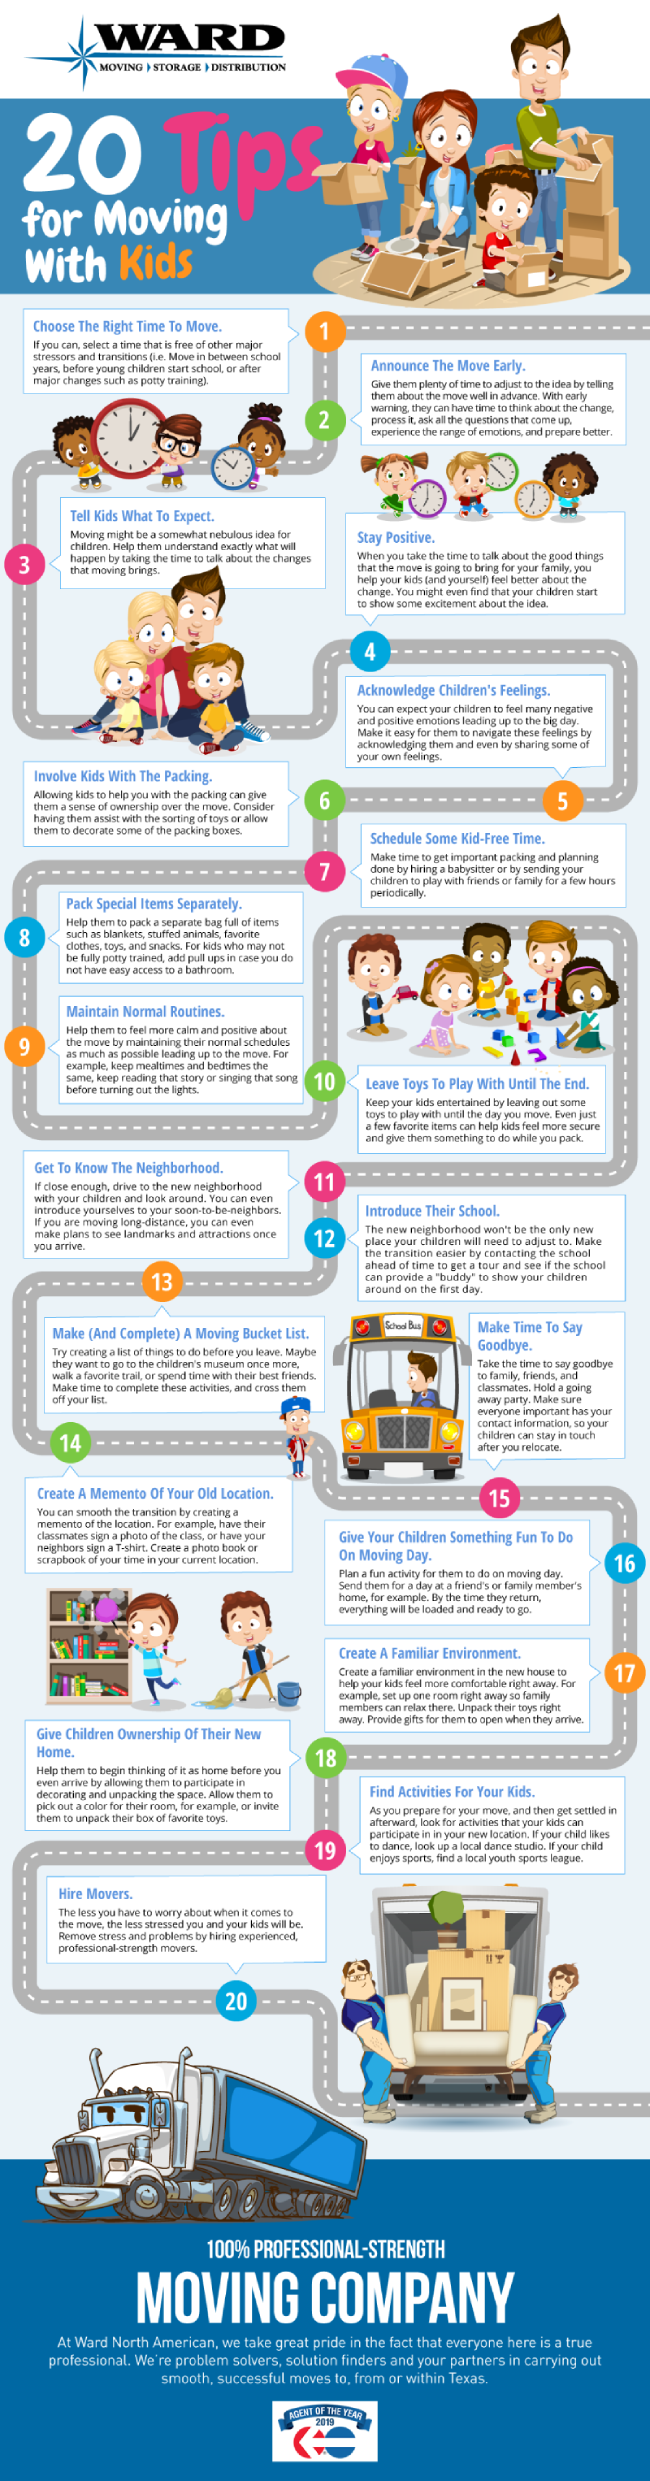 Moving with kids infographic